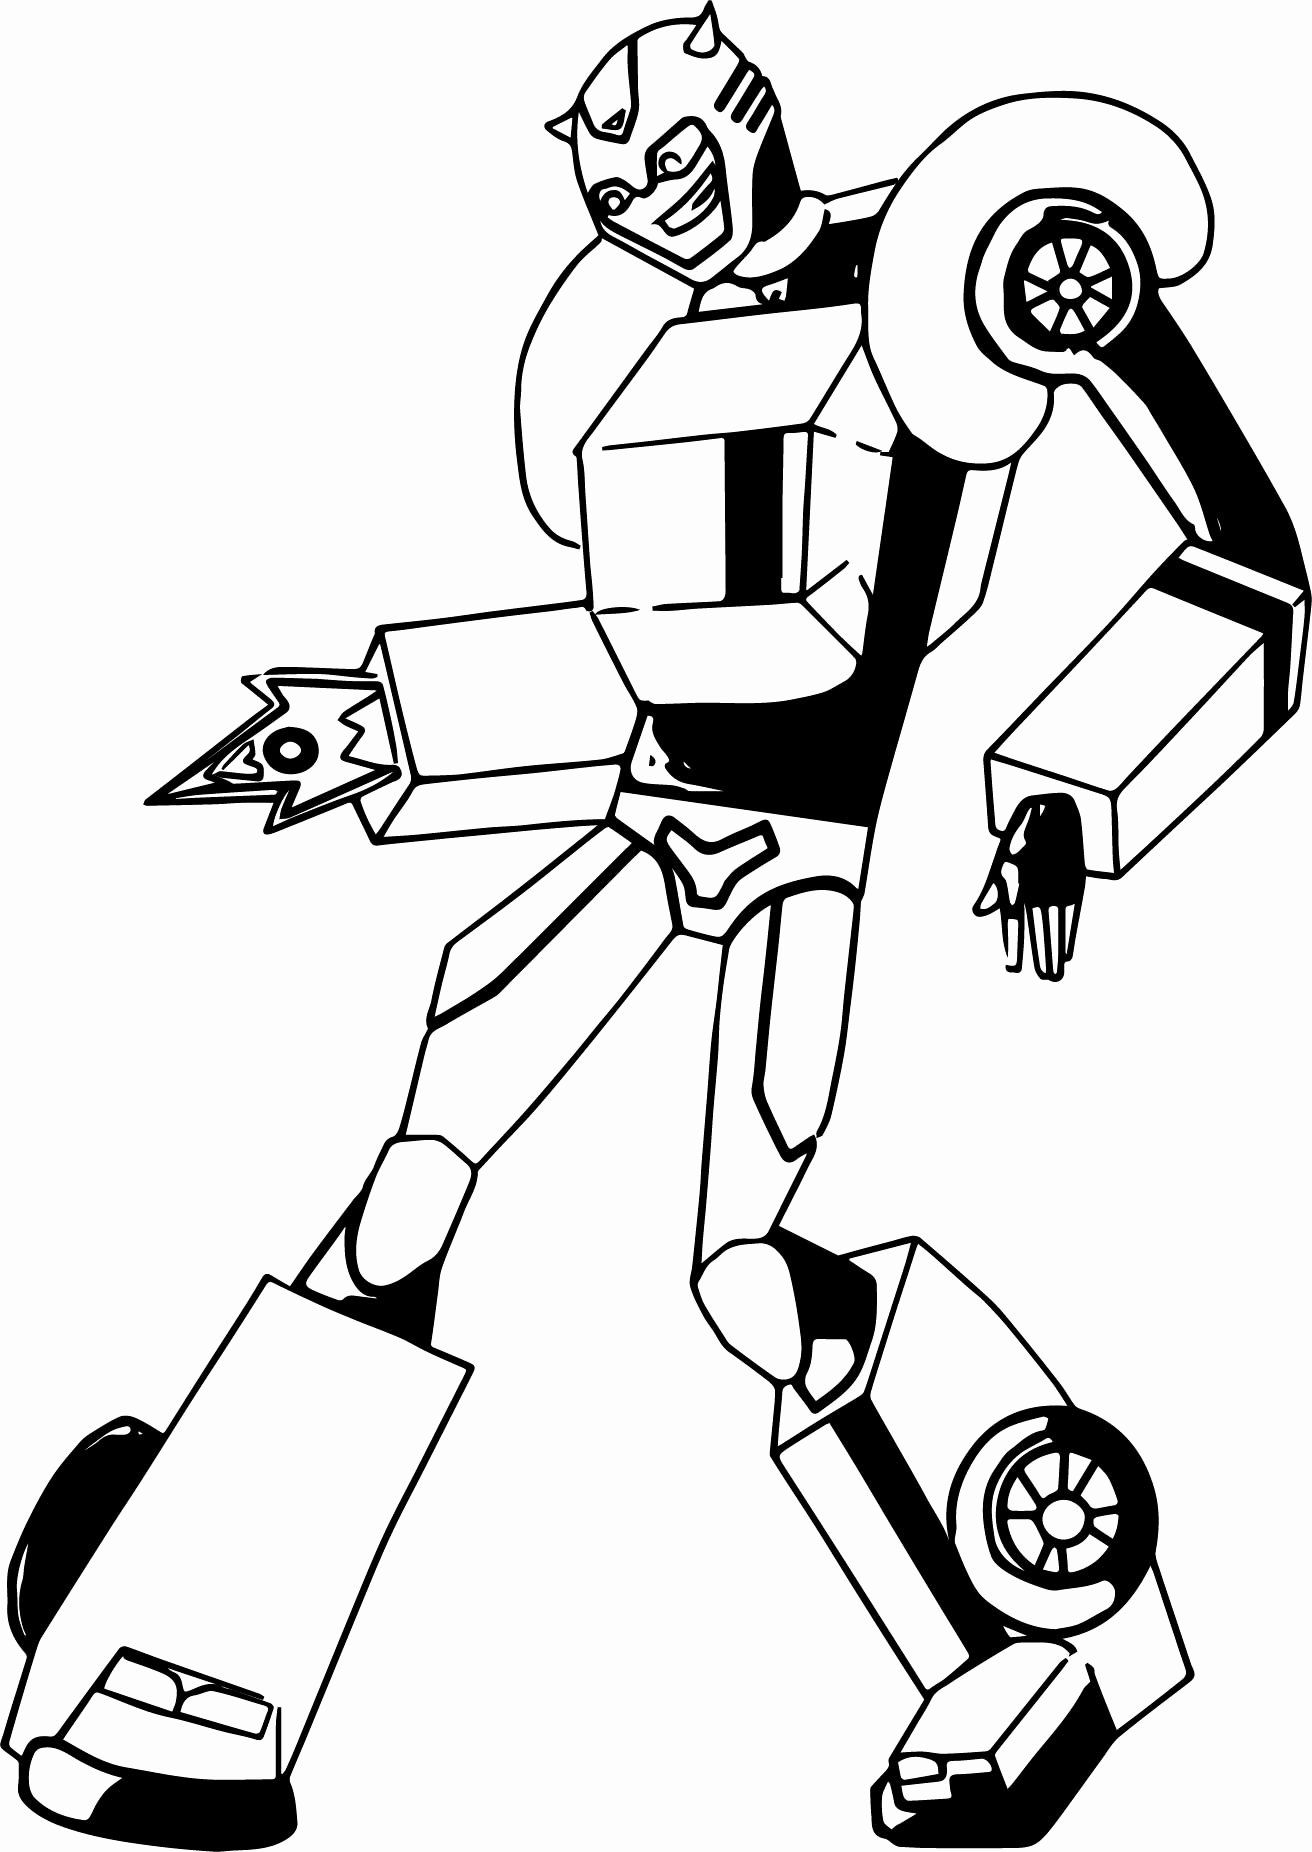 Bumblebee Transformer Coloring Page Best Of Bumblebee Coloring Pages Parumi Southwestda Transformers Coloring Pages Bee Coloring Pages Ninjago Coloring Pages